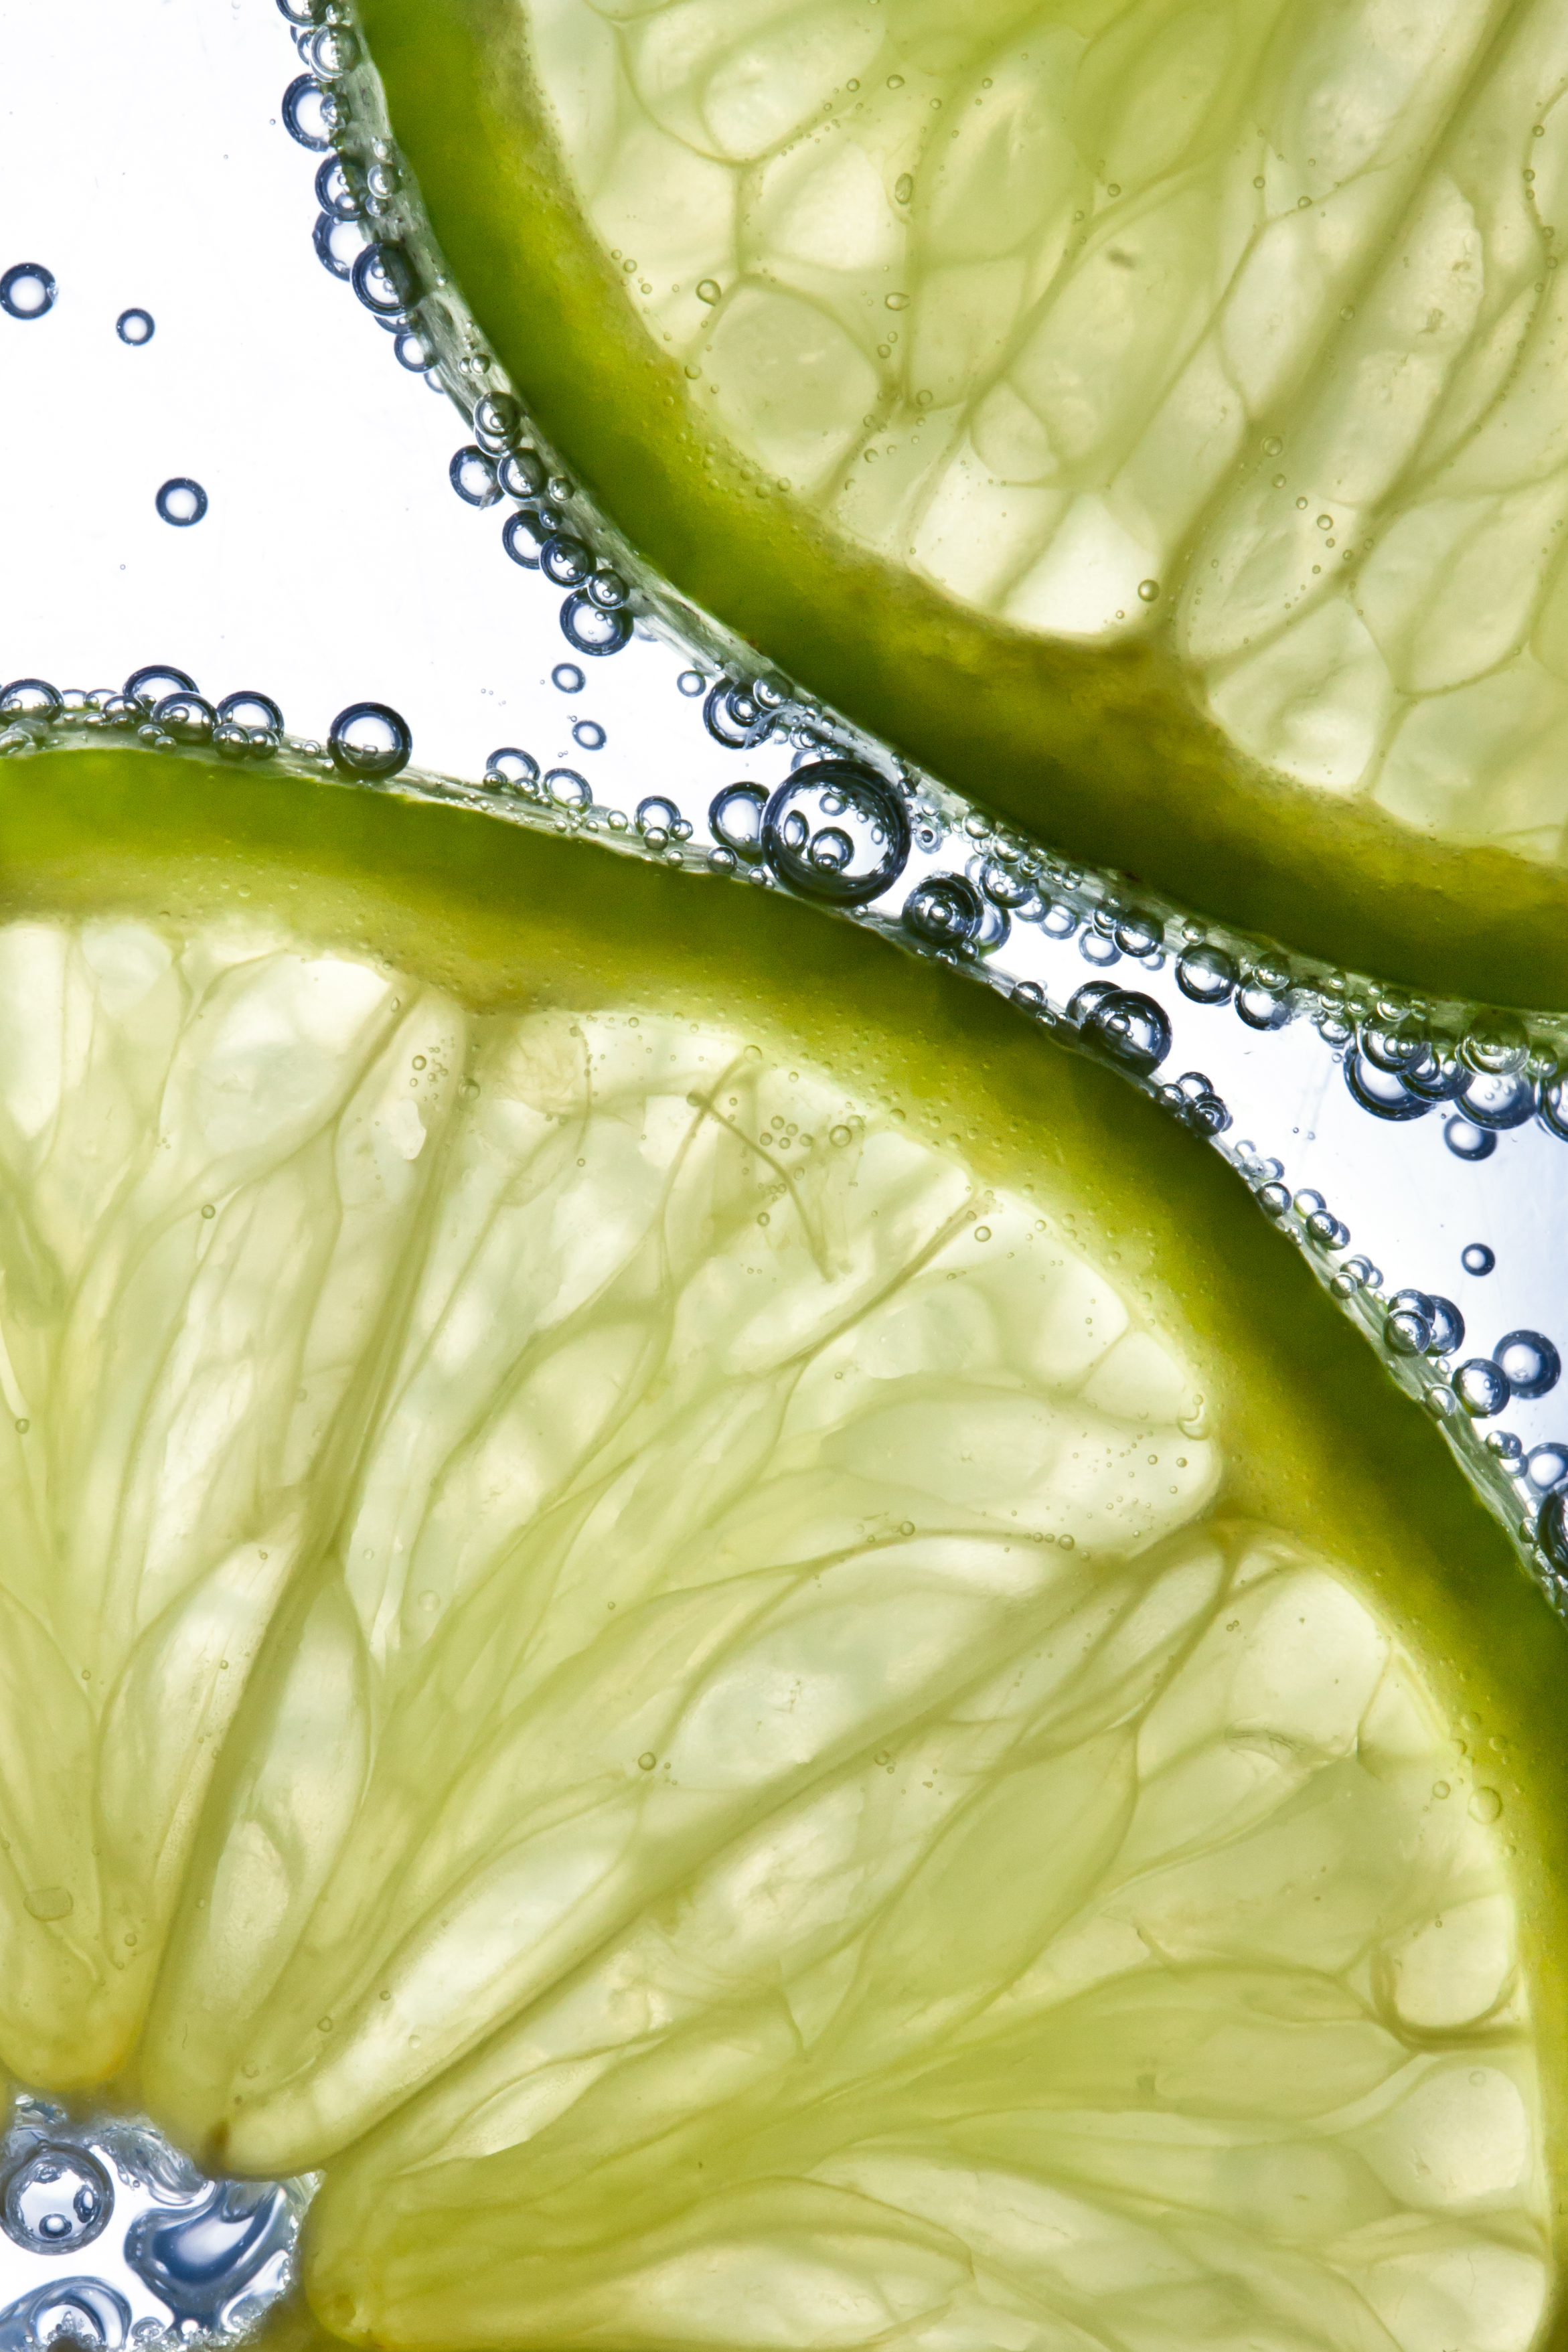 129863 download wallpaper Water, Food, Bubbles, Lime, Citrus, Lobules, Slices screensavers and pictures for free